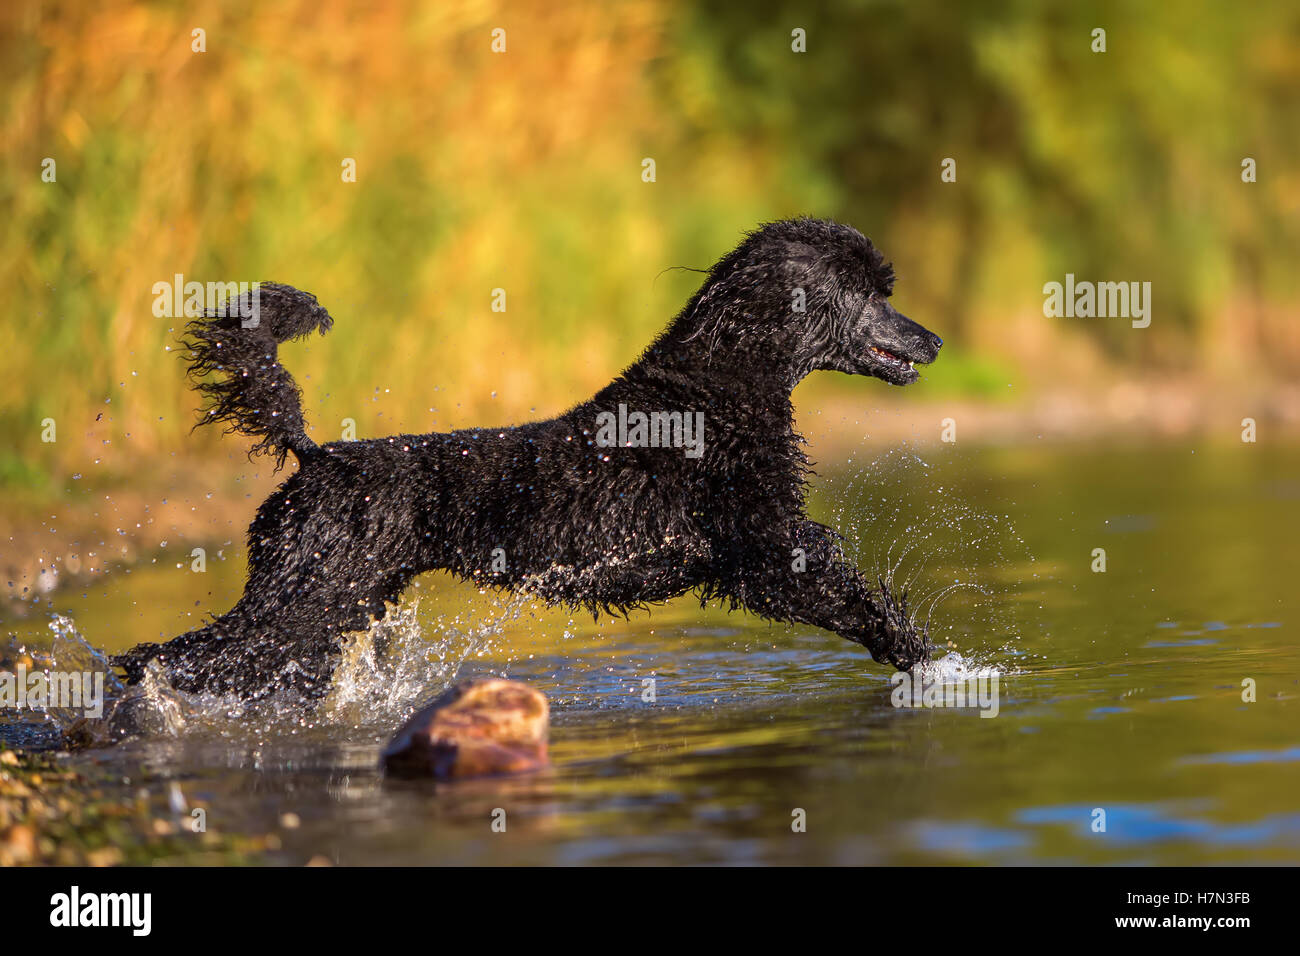 royal poodle running in the water of a lake - Stock Image